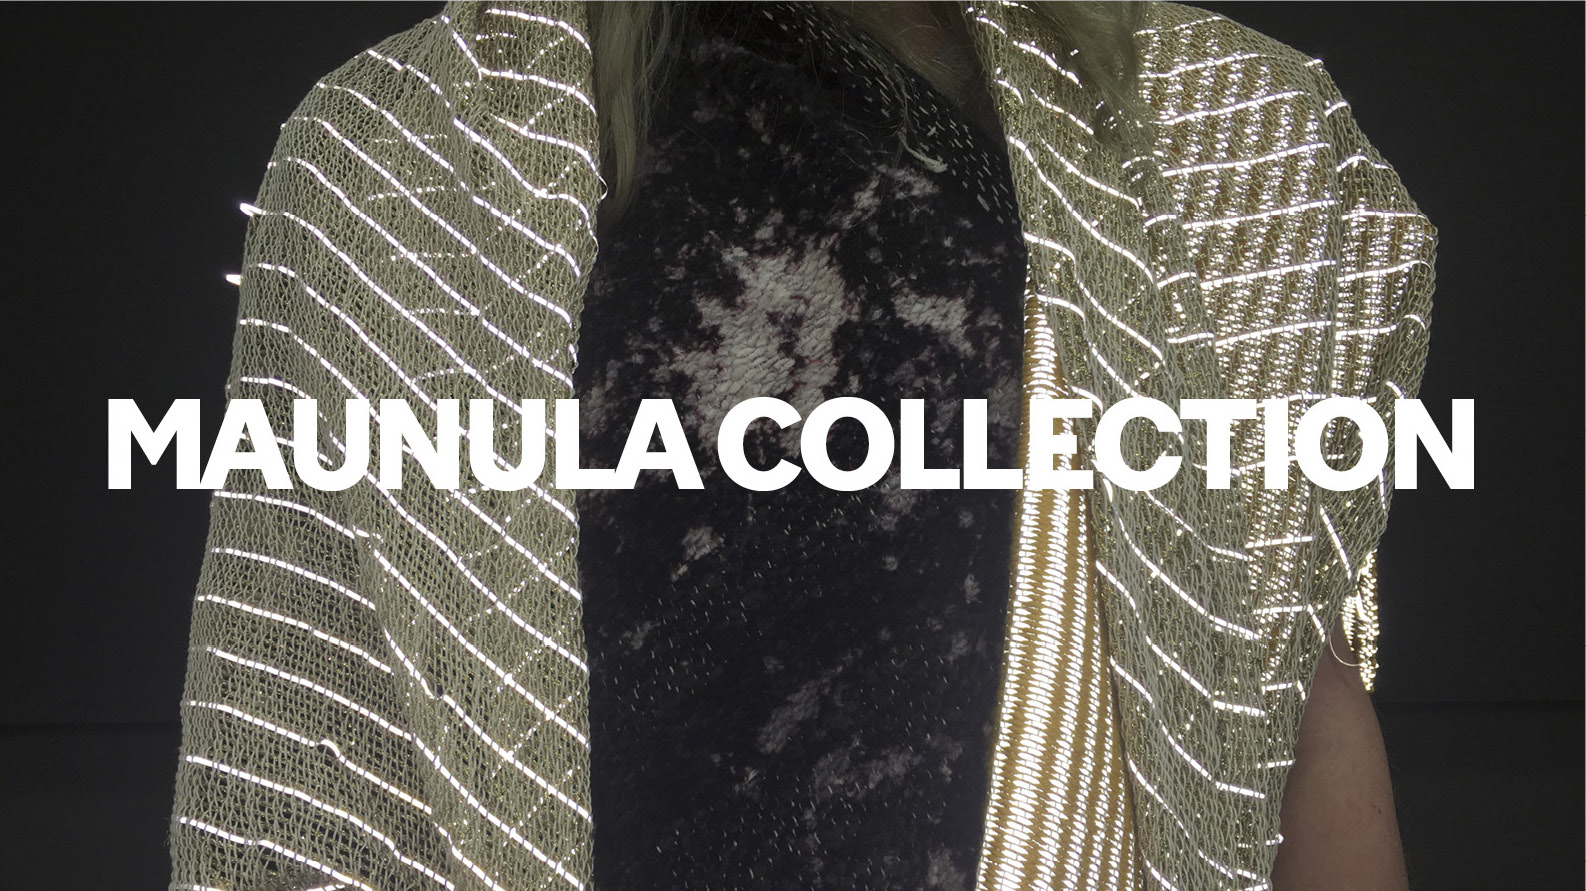 maunulacollection